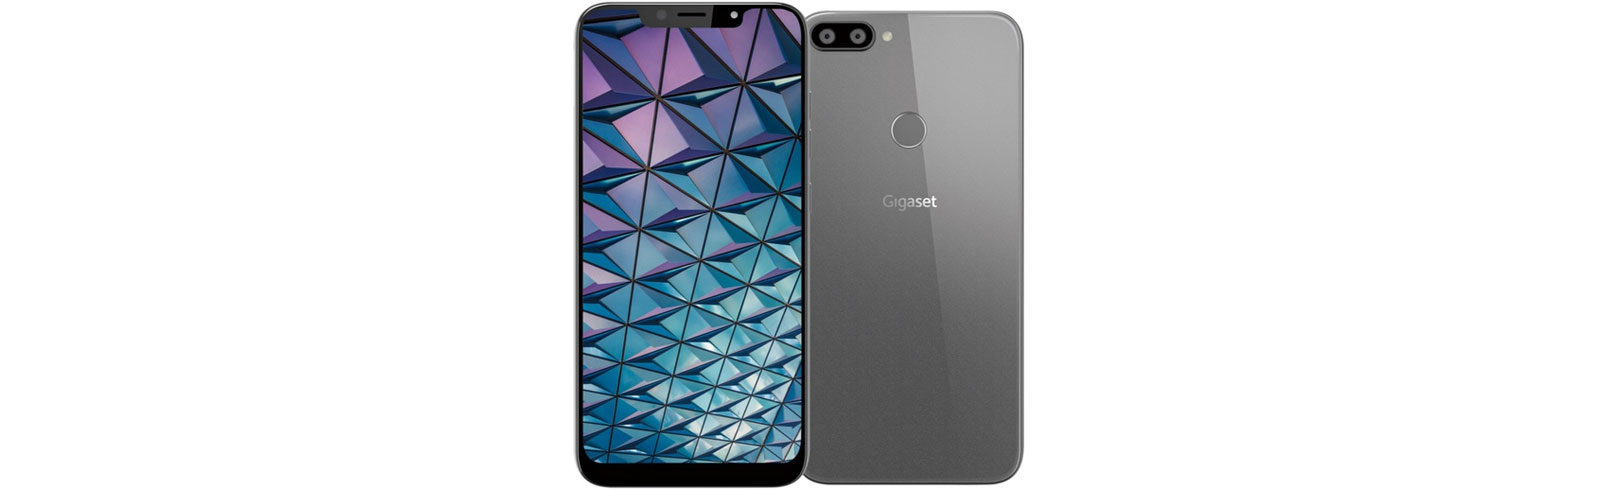 """Gigaset announces a new smartphone in Germany priced at EUR 199 with a glass back, 6.18"""" FHD+ display, 4000 mAh battery"""